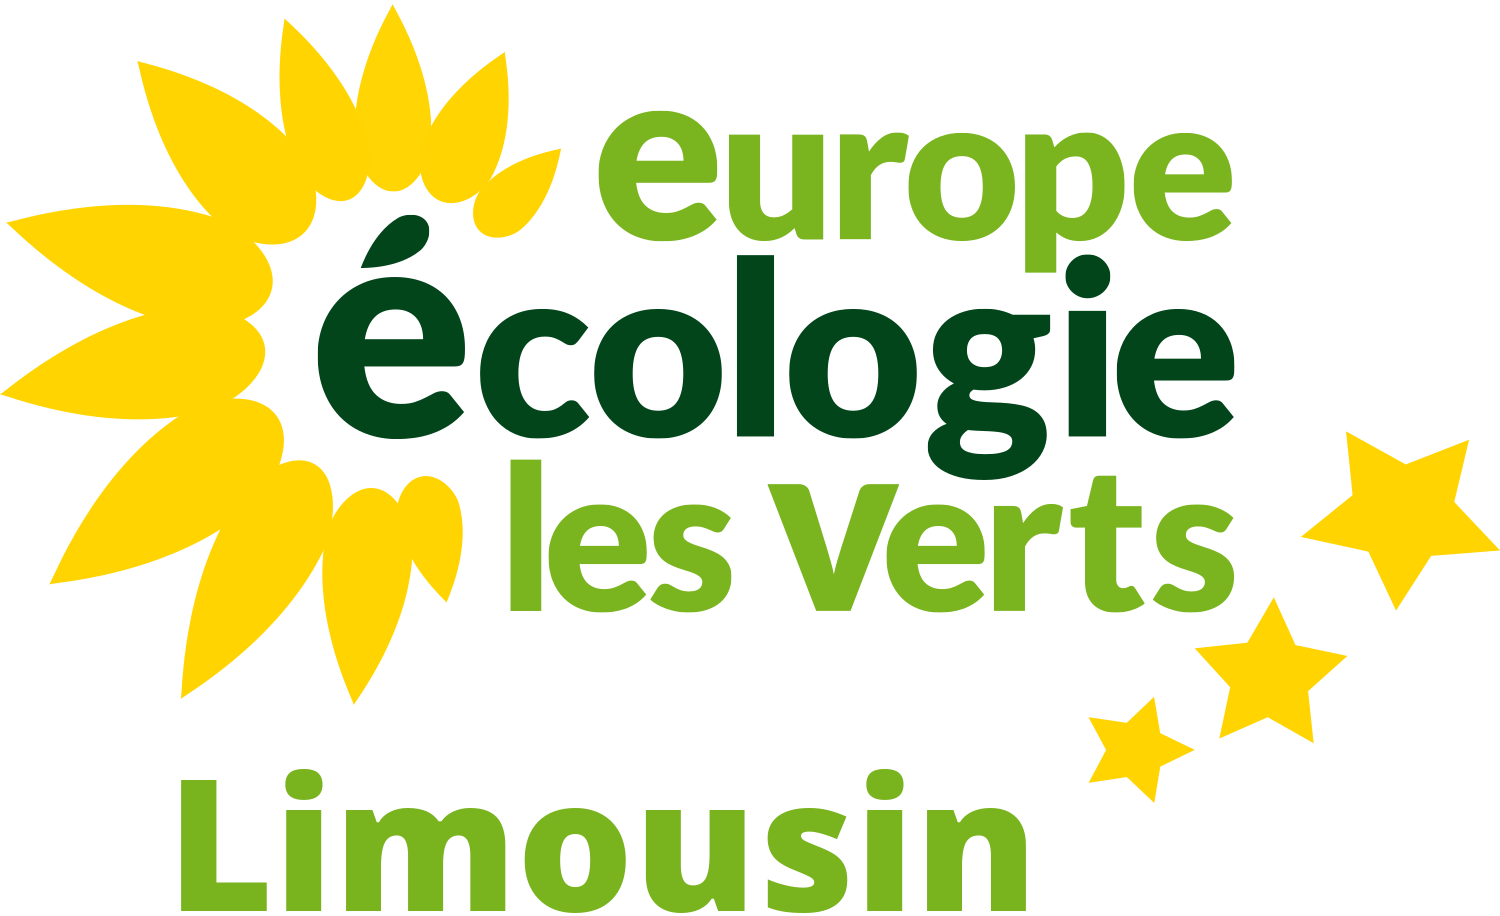 Europe Ecologie Les Verts Limousin